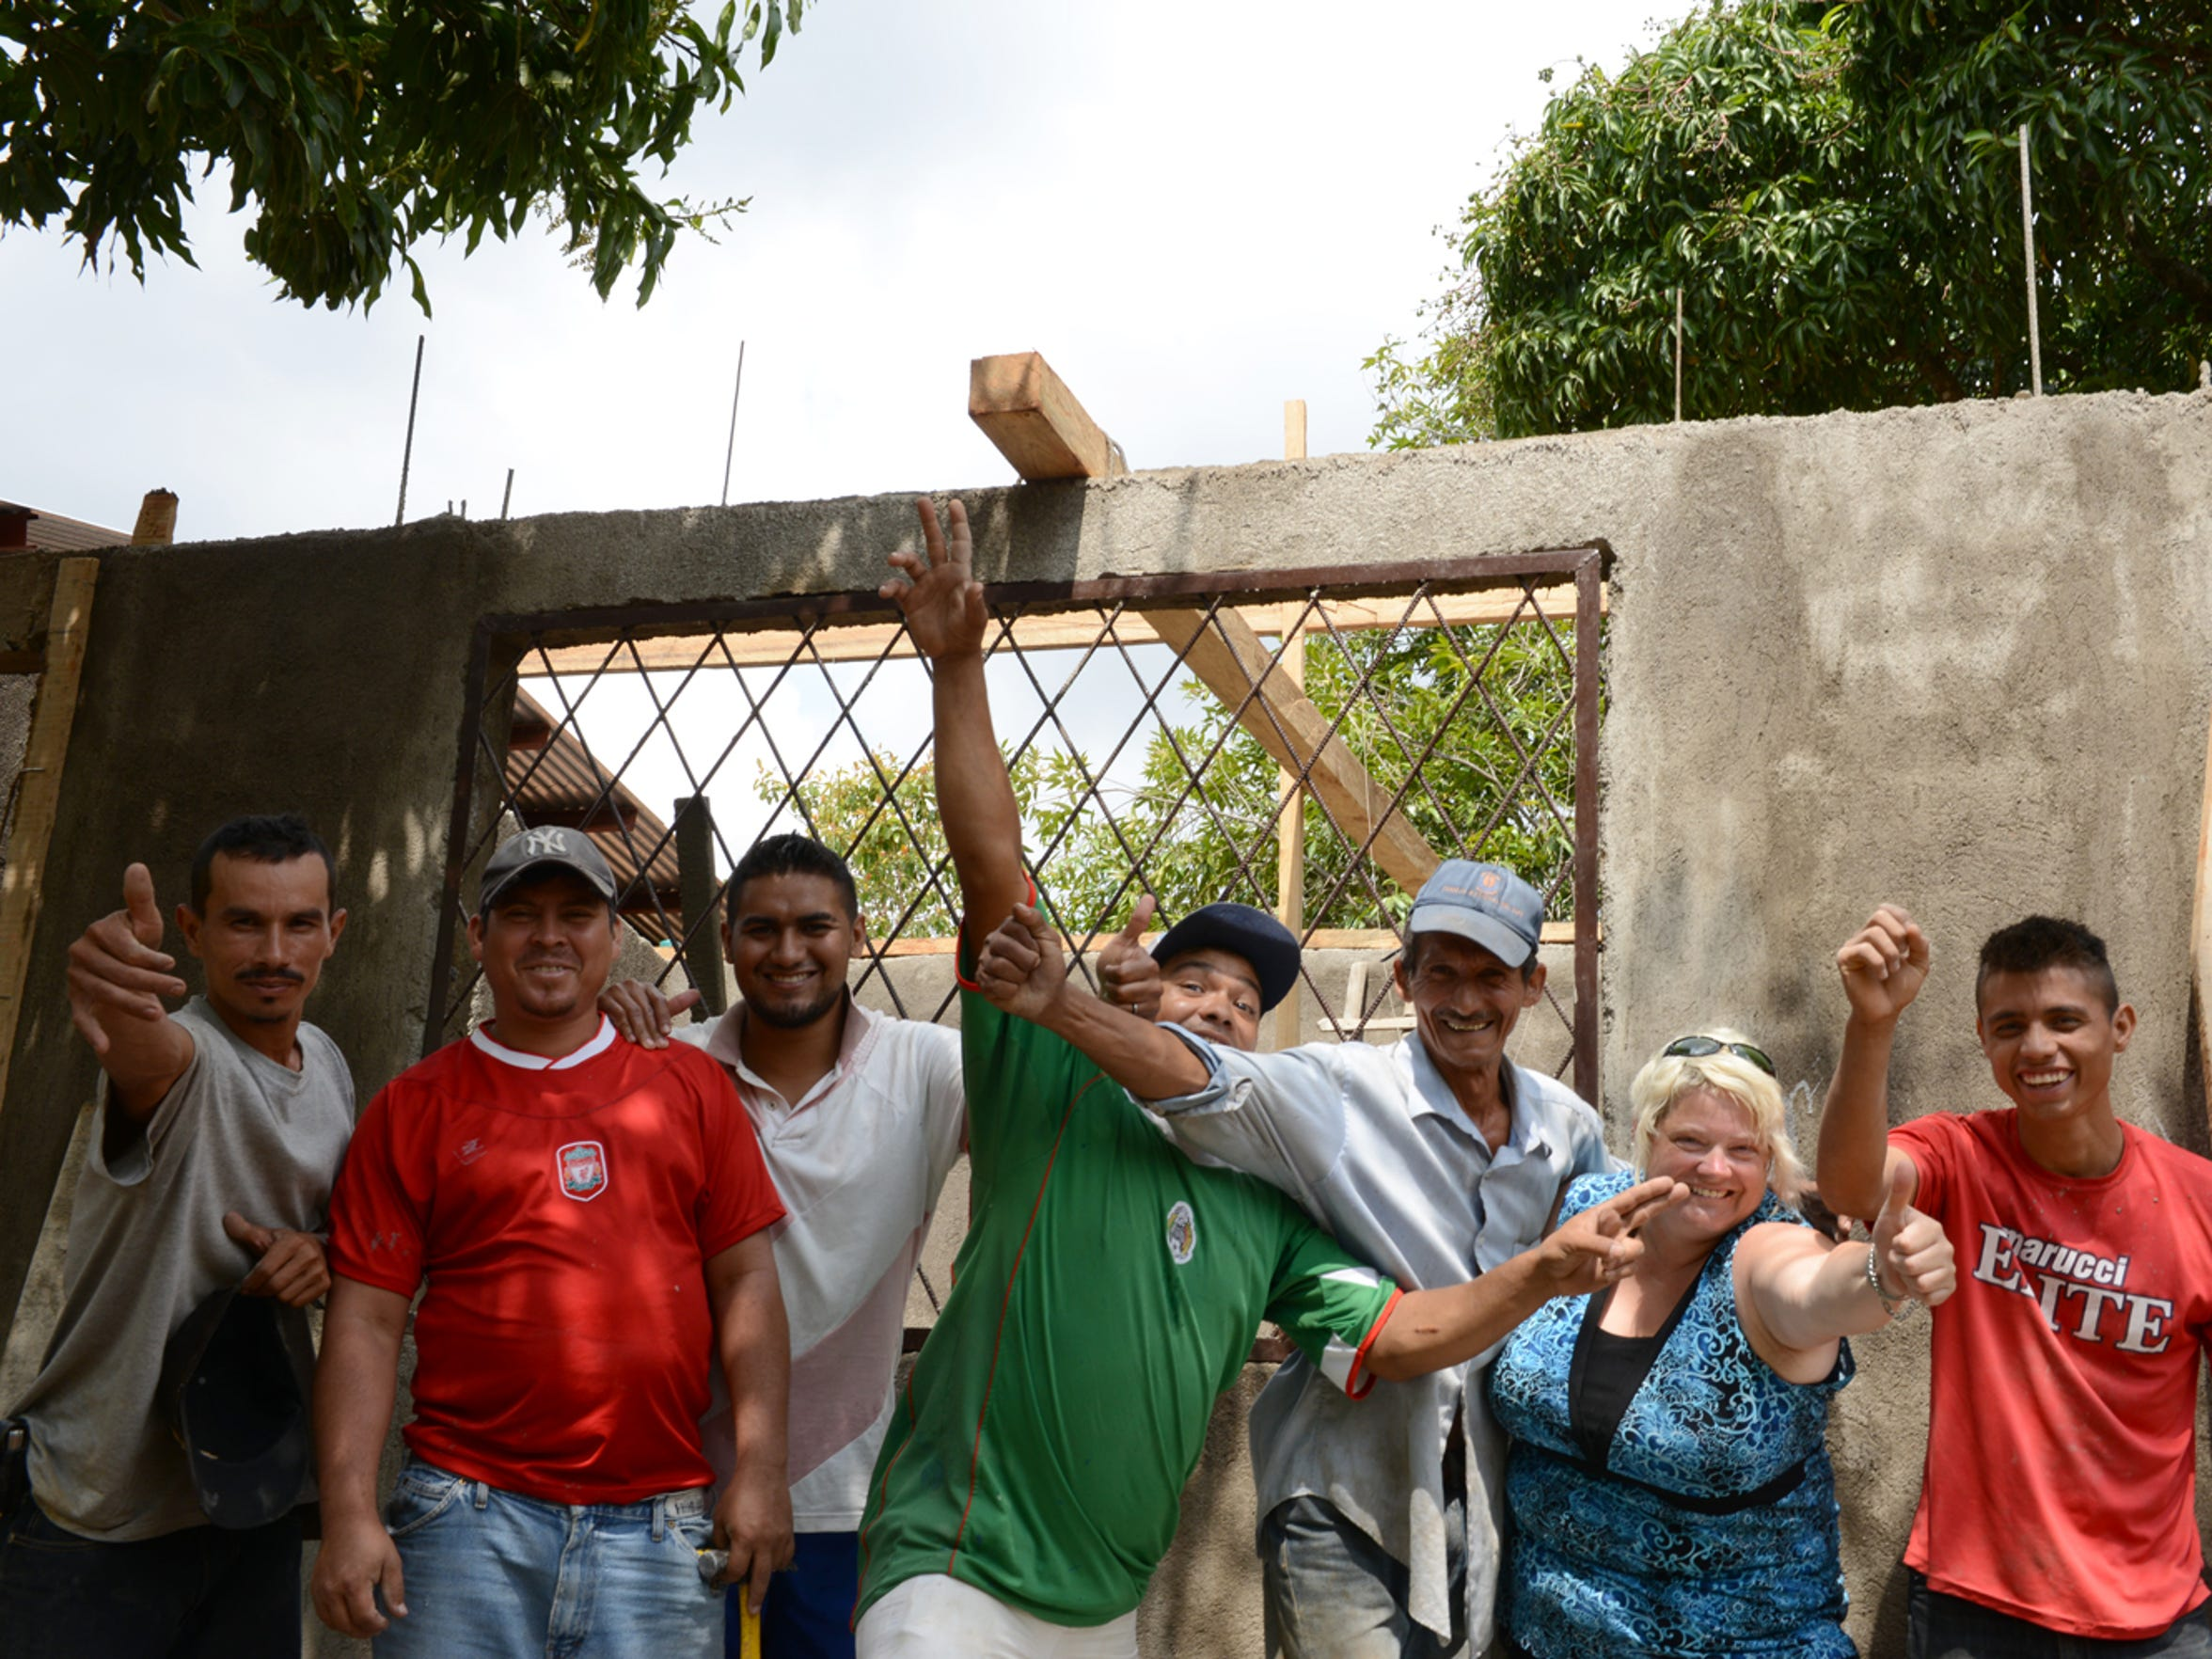 Kris and a group of people working to build a new school.